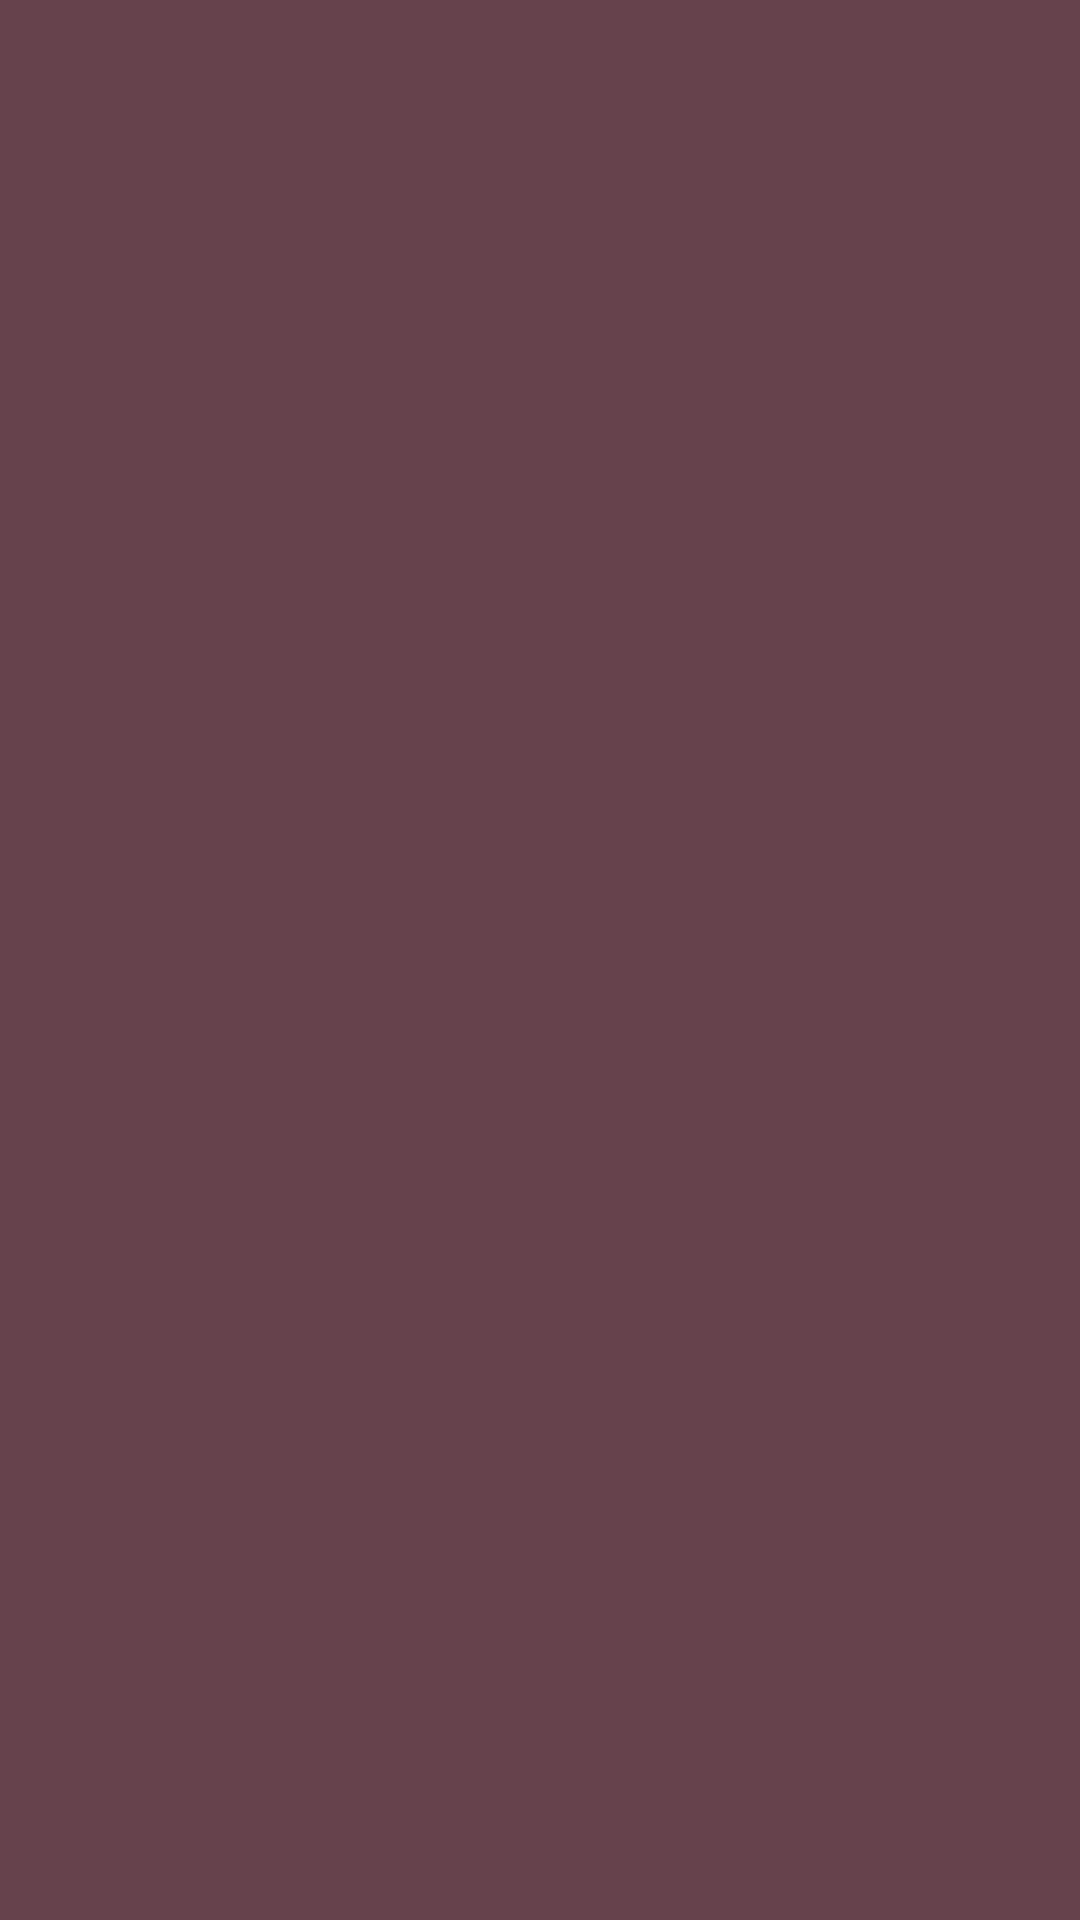 1080x1920 Deep Tuscan Red Solid Color Background